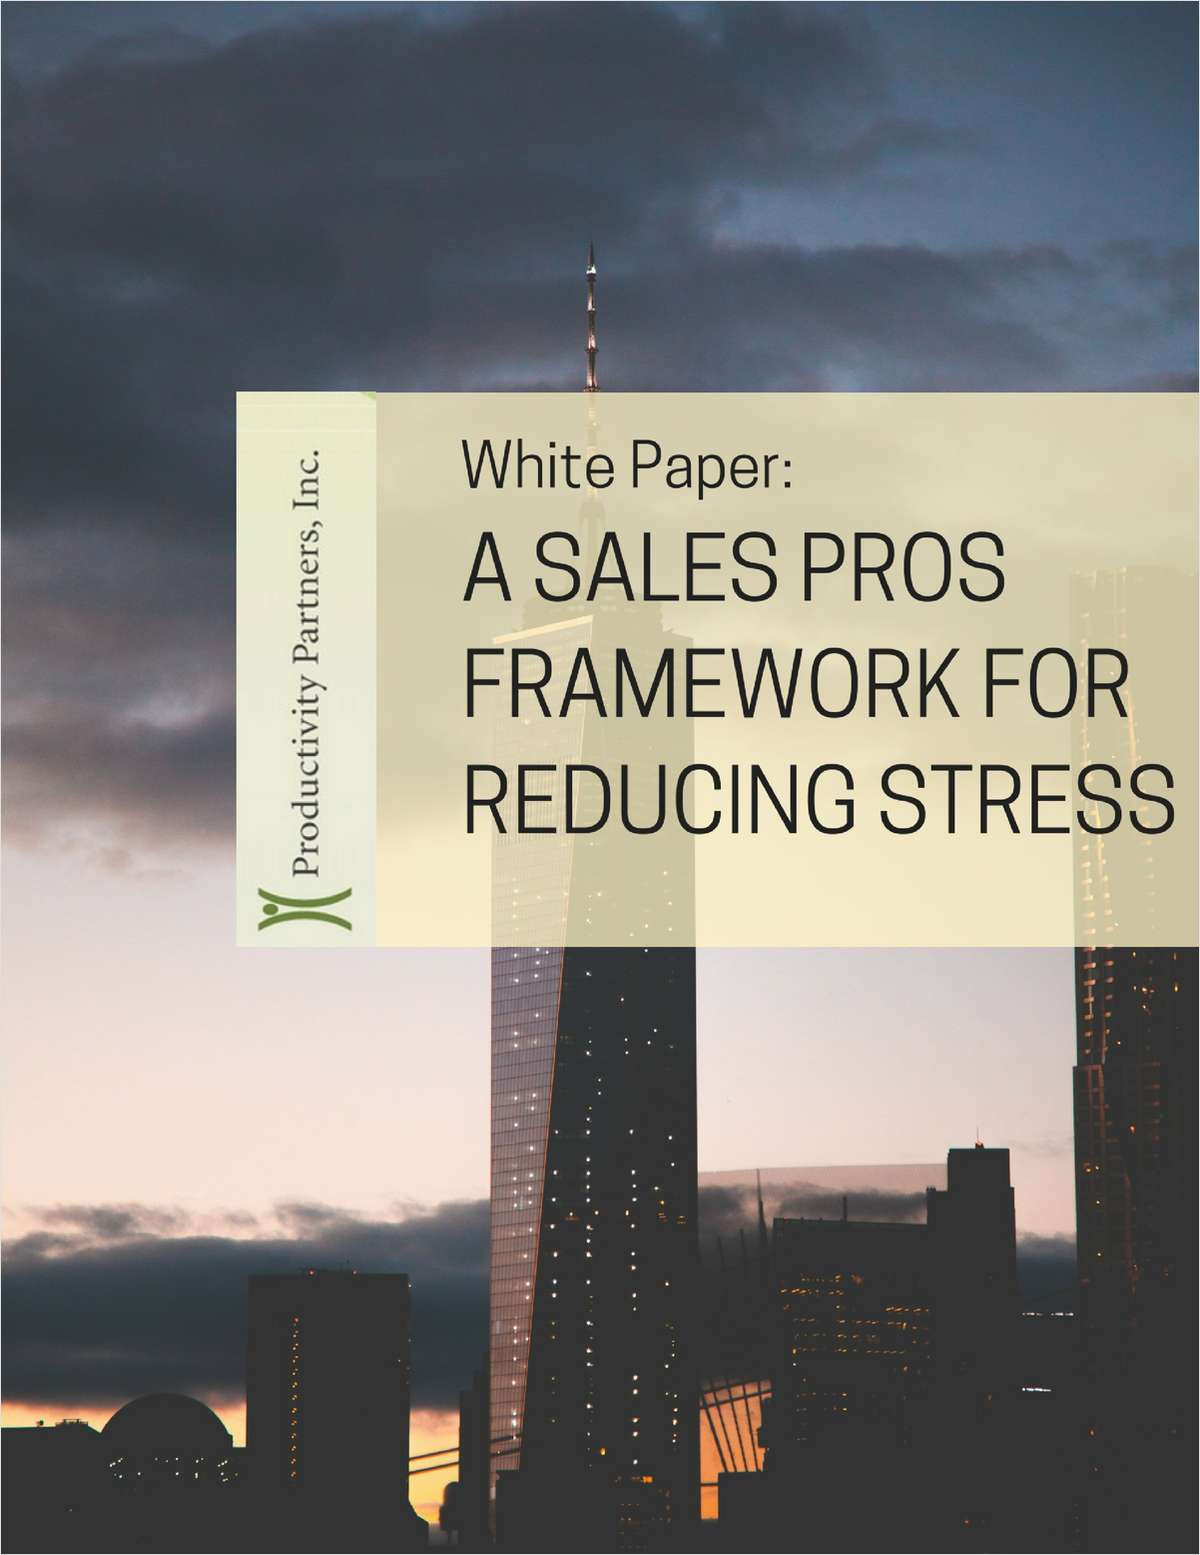 A Sales Pros Framework for Reducing Stress